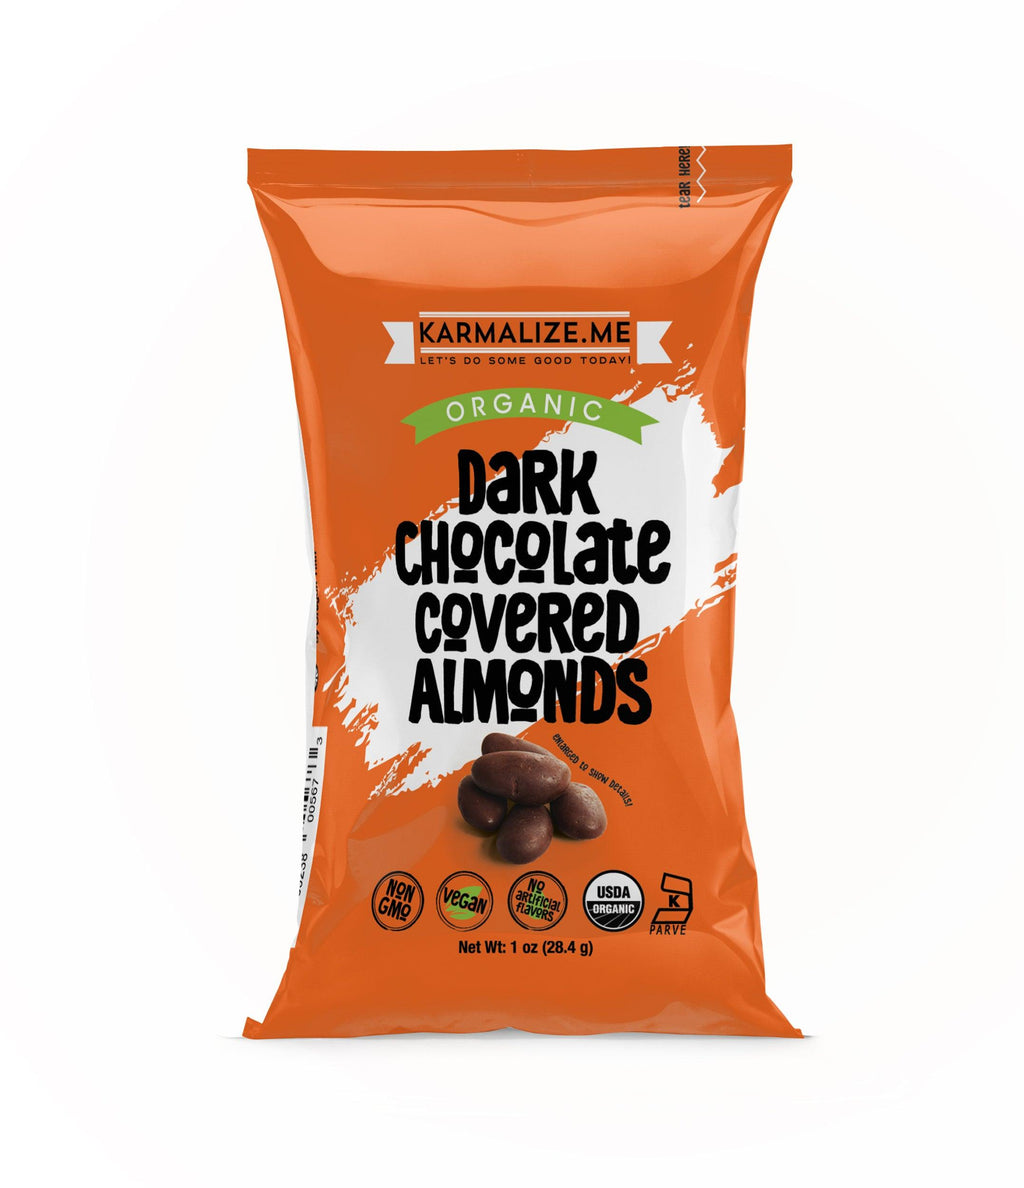 1 oz. Organic Vegan Dark Chocolate Covered Almonds - Pack of 6